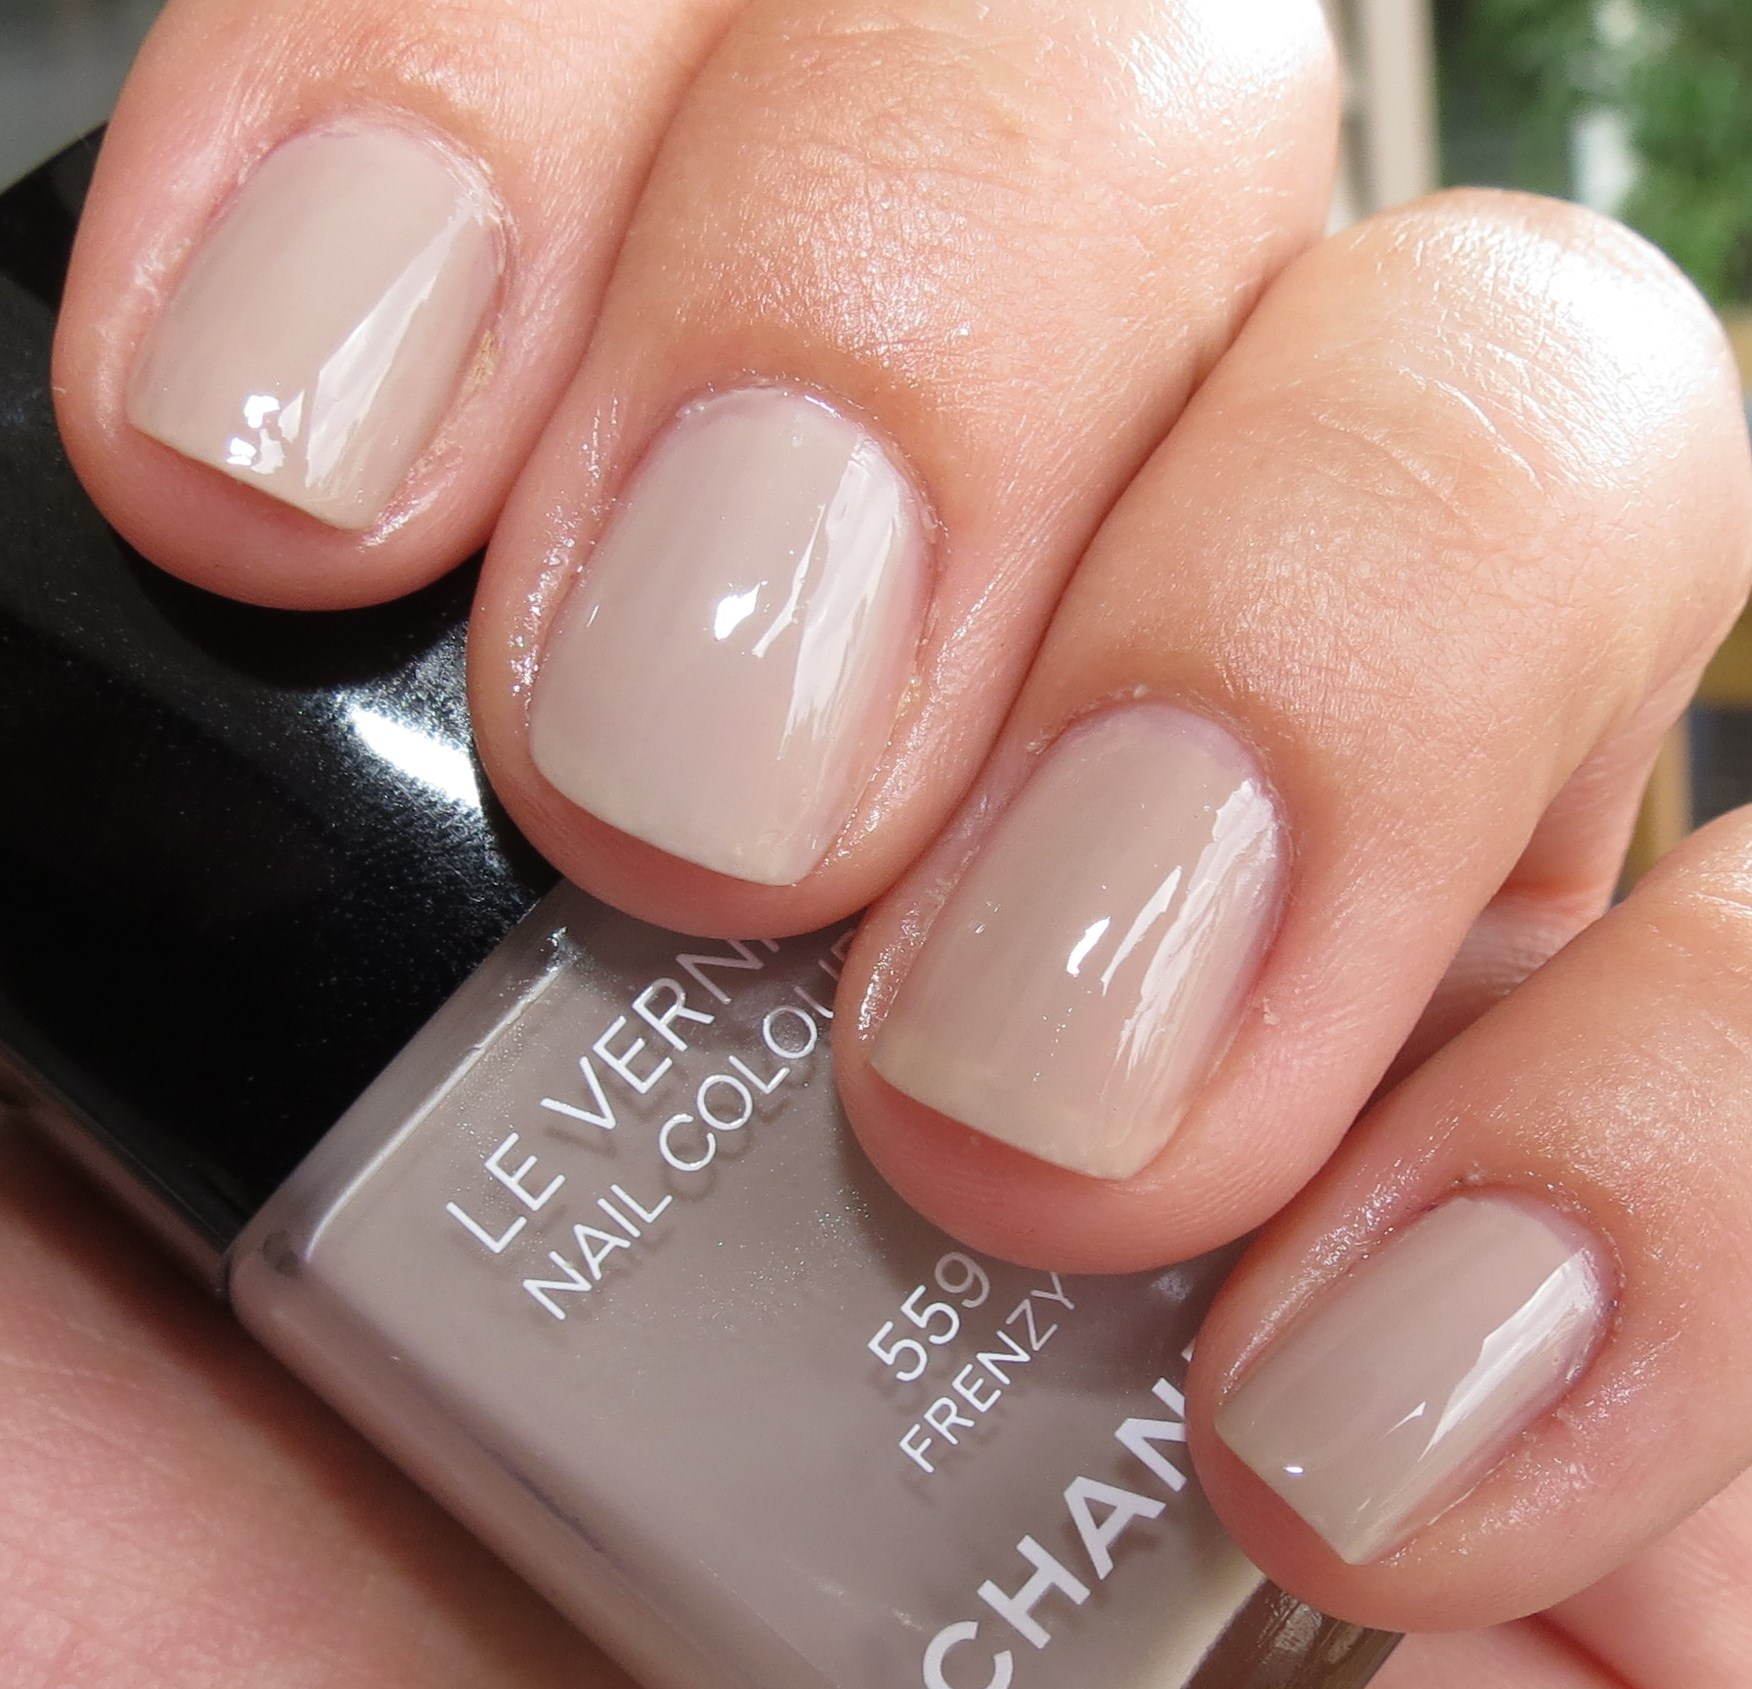 Nail Polish On Pinky Finger Meaning: MAC Quiet Time Nail Polish Swatches, Review, And